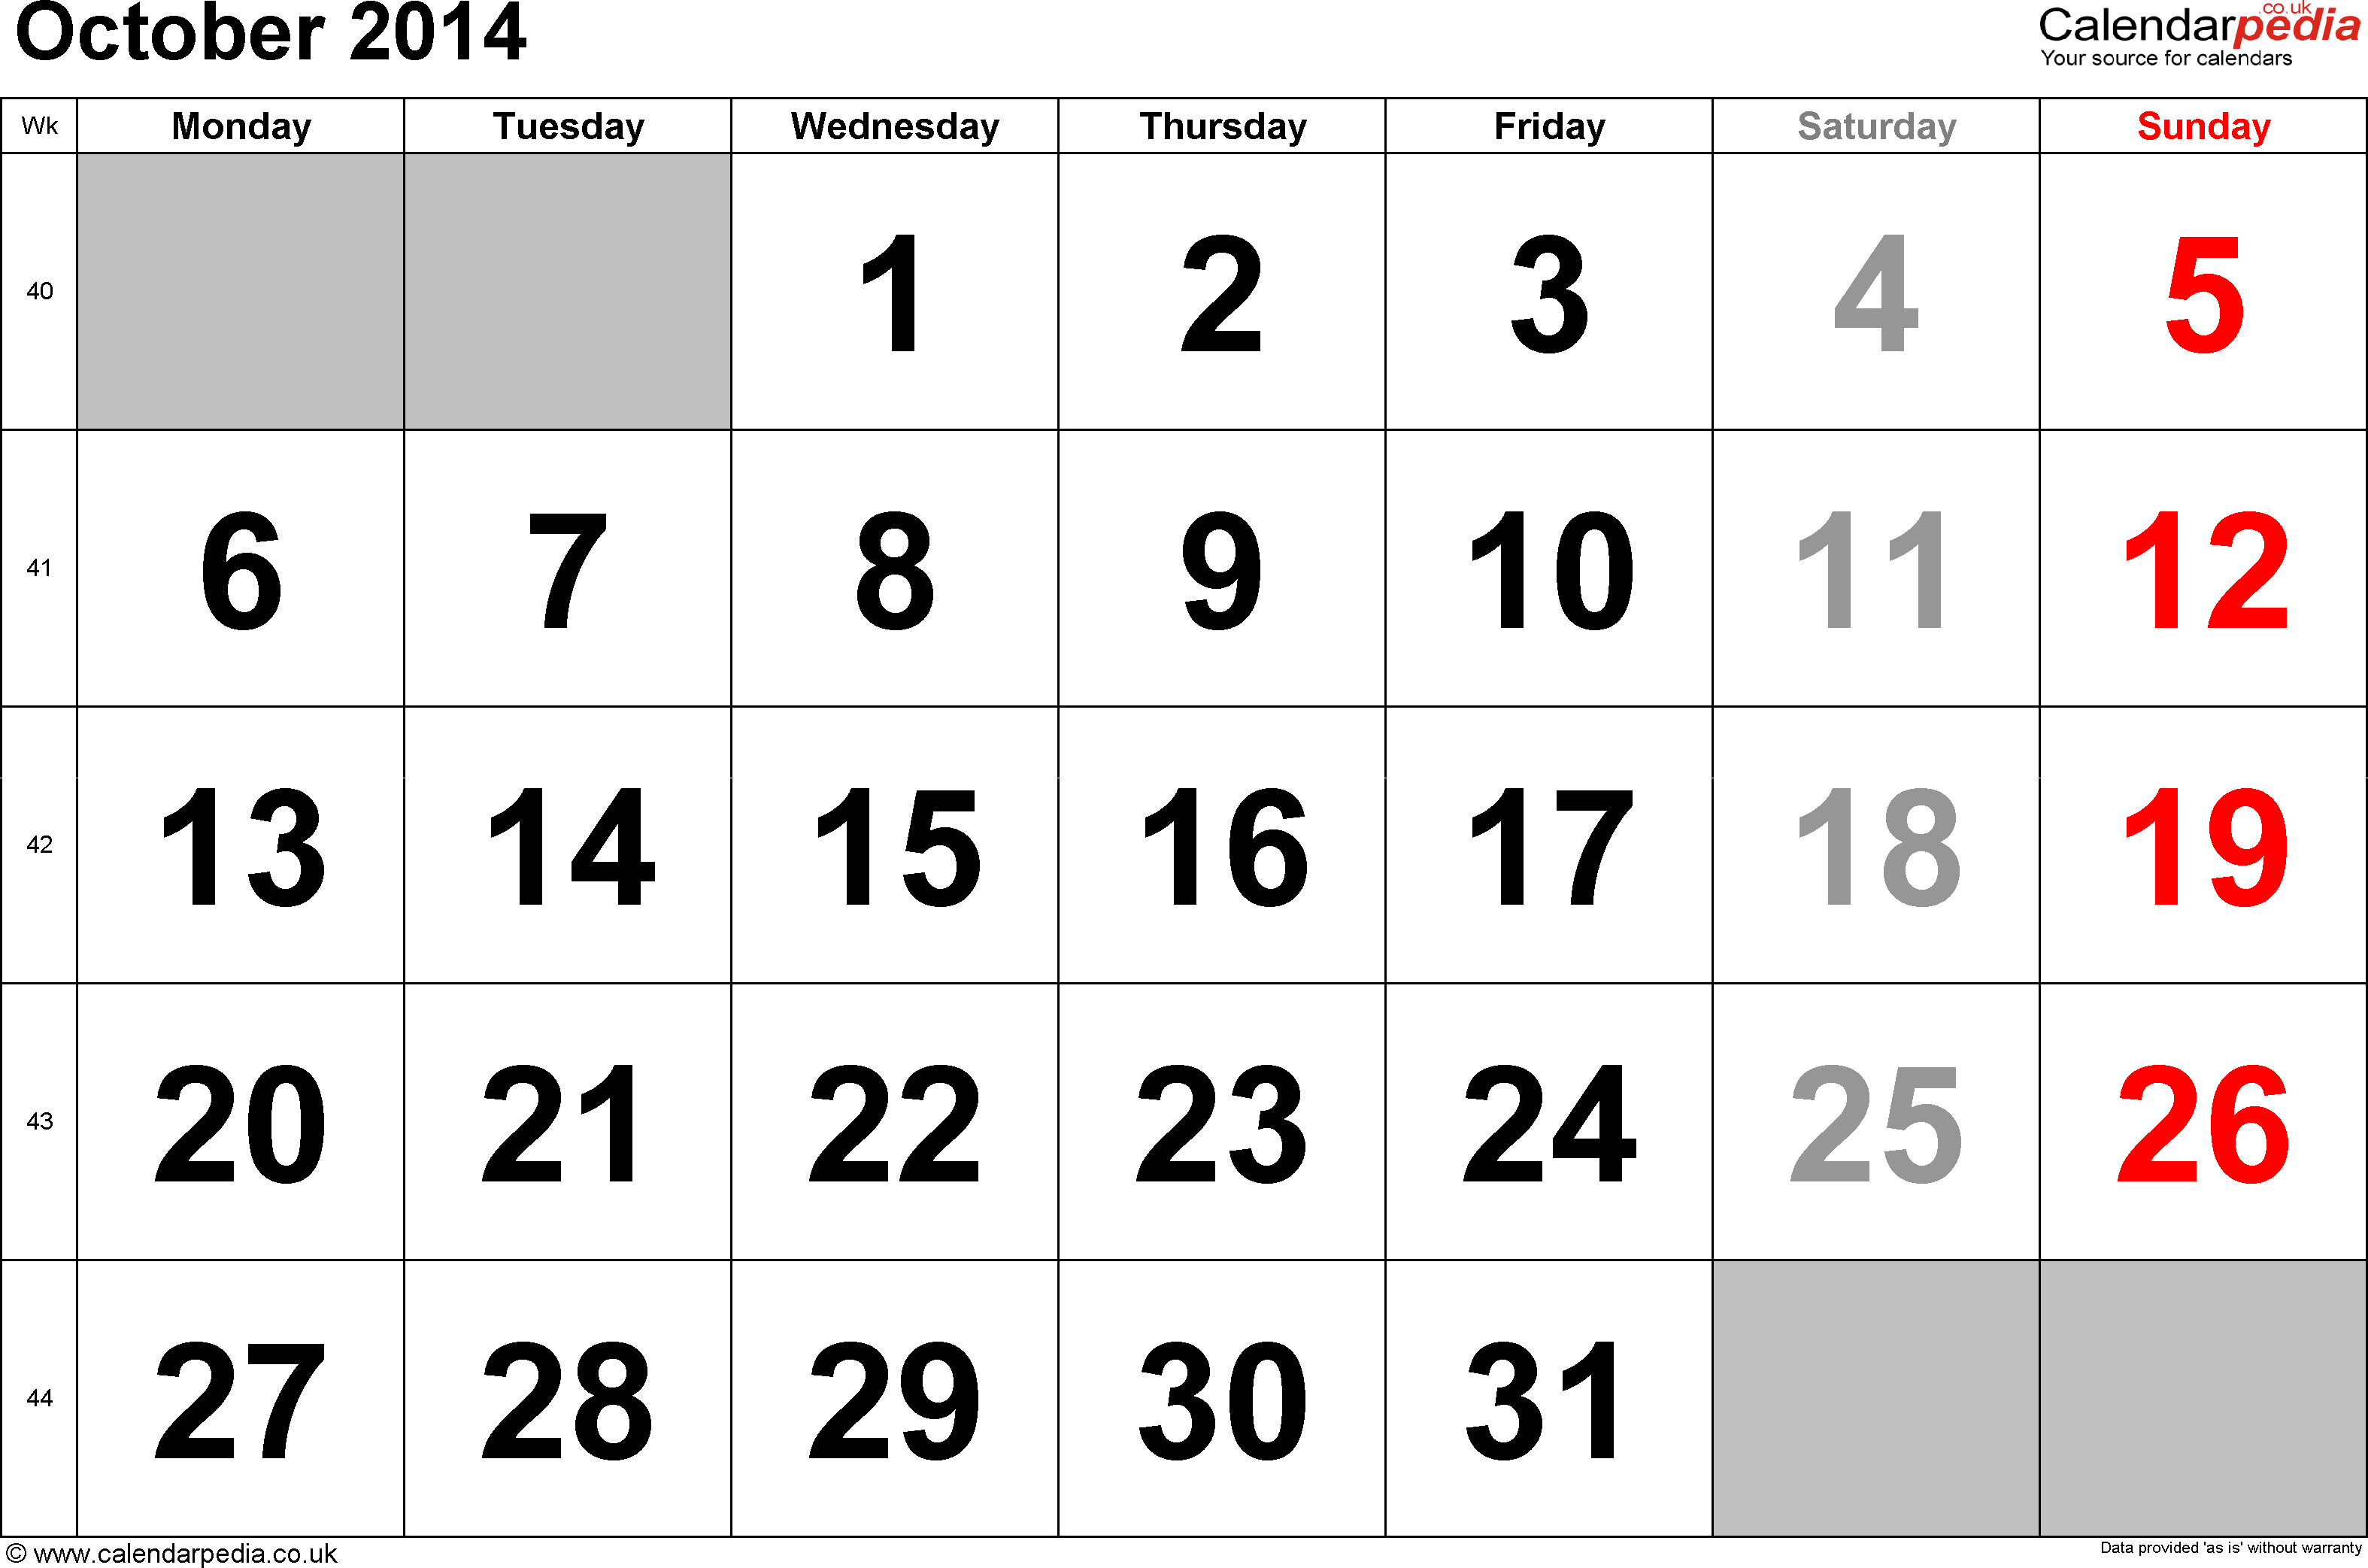 Calendar October 2014, landscape orientation, large numerals, 1 page, with UK bank holidays and week numbers